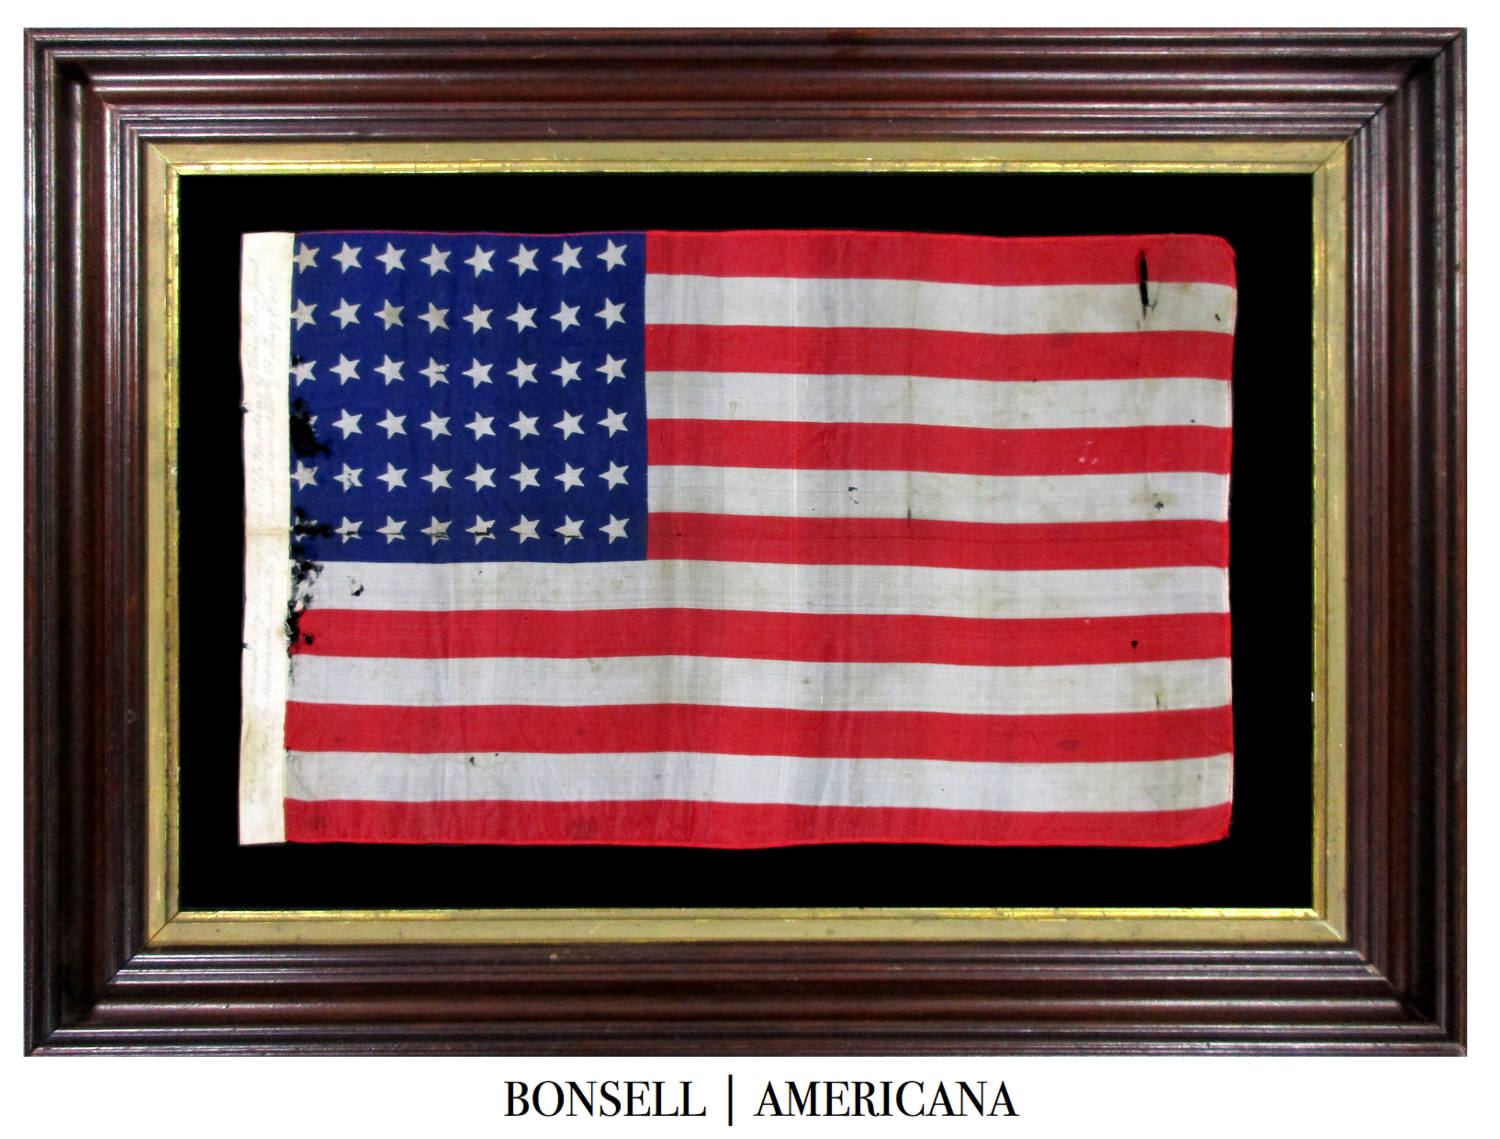 48 Star Antique American Flag with Canted Stars and Made by M.C. Robison, the Great Granddaughter of Betsy Ross